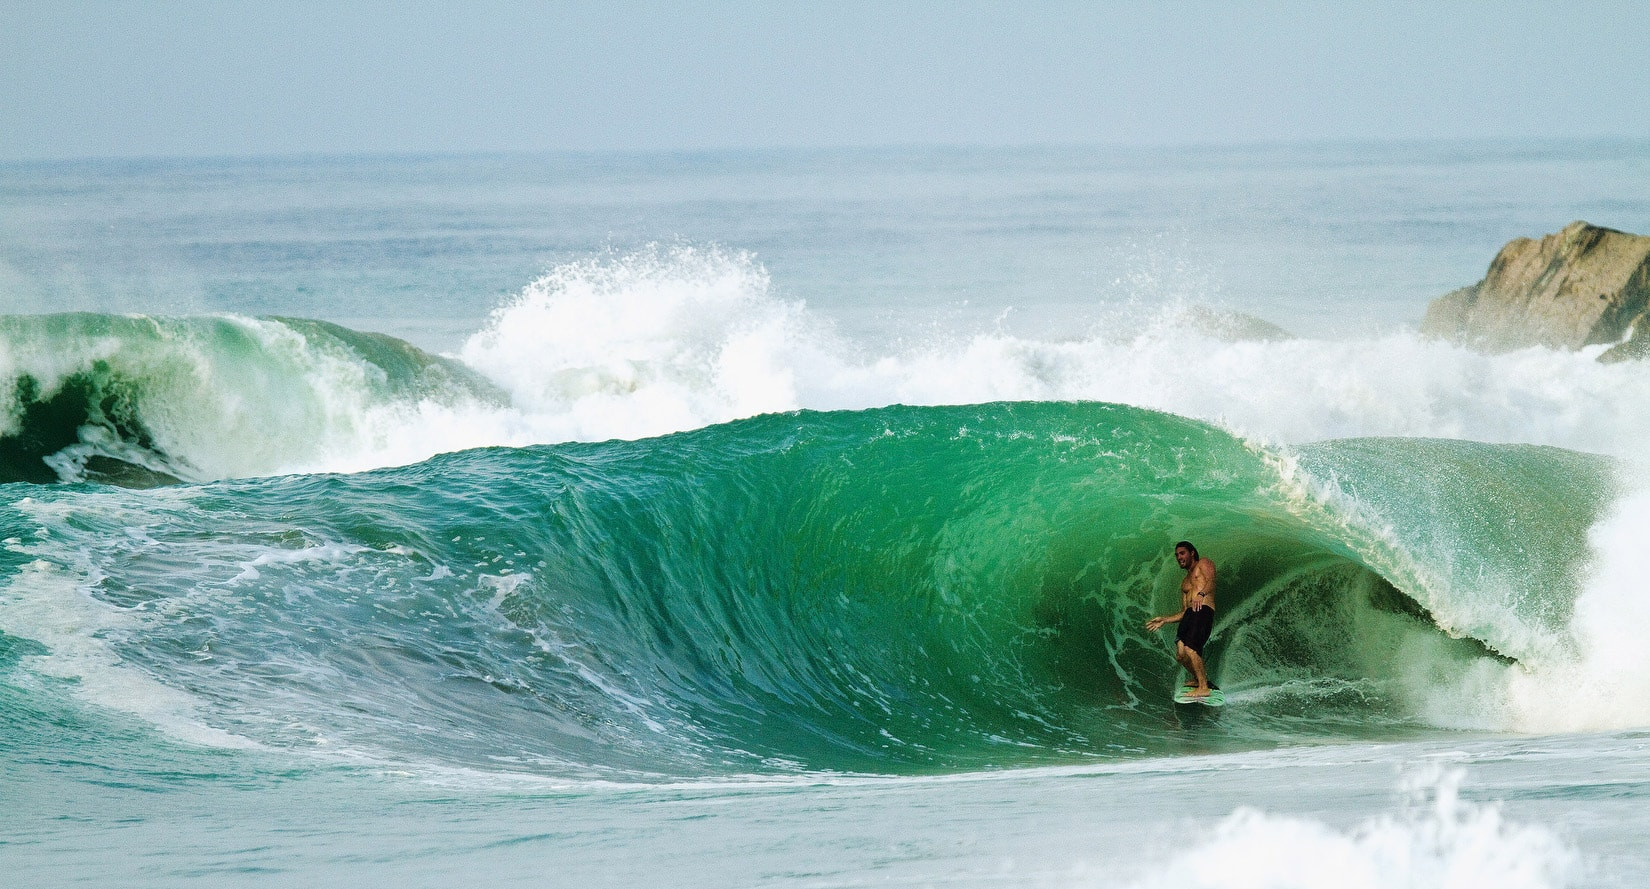 Salina Cruz Surf Camp standing in an epic right point break tube